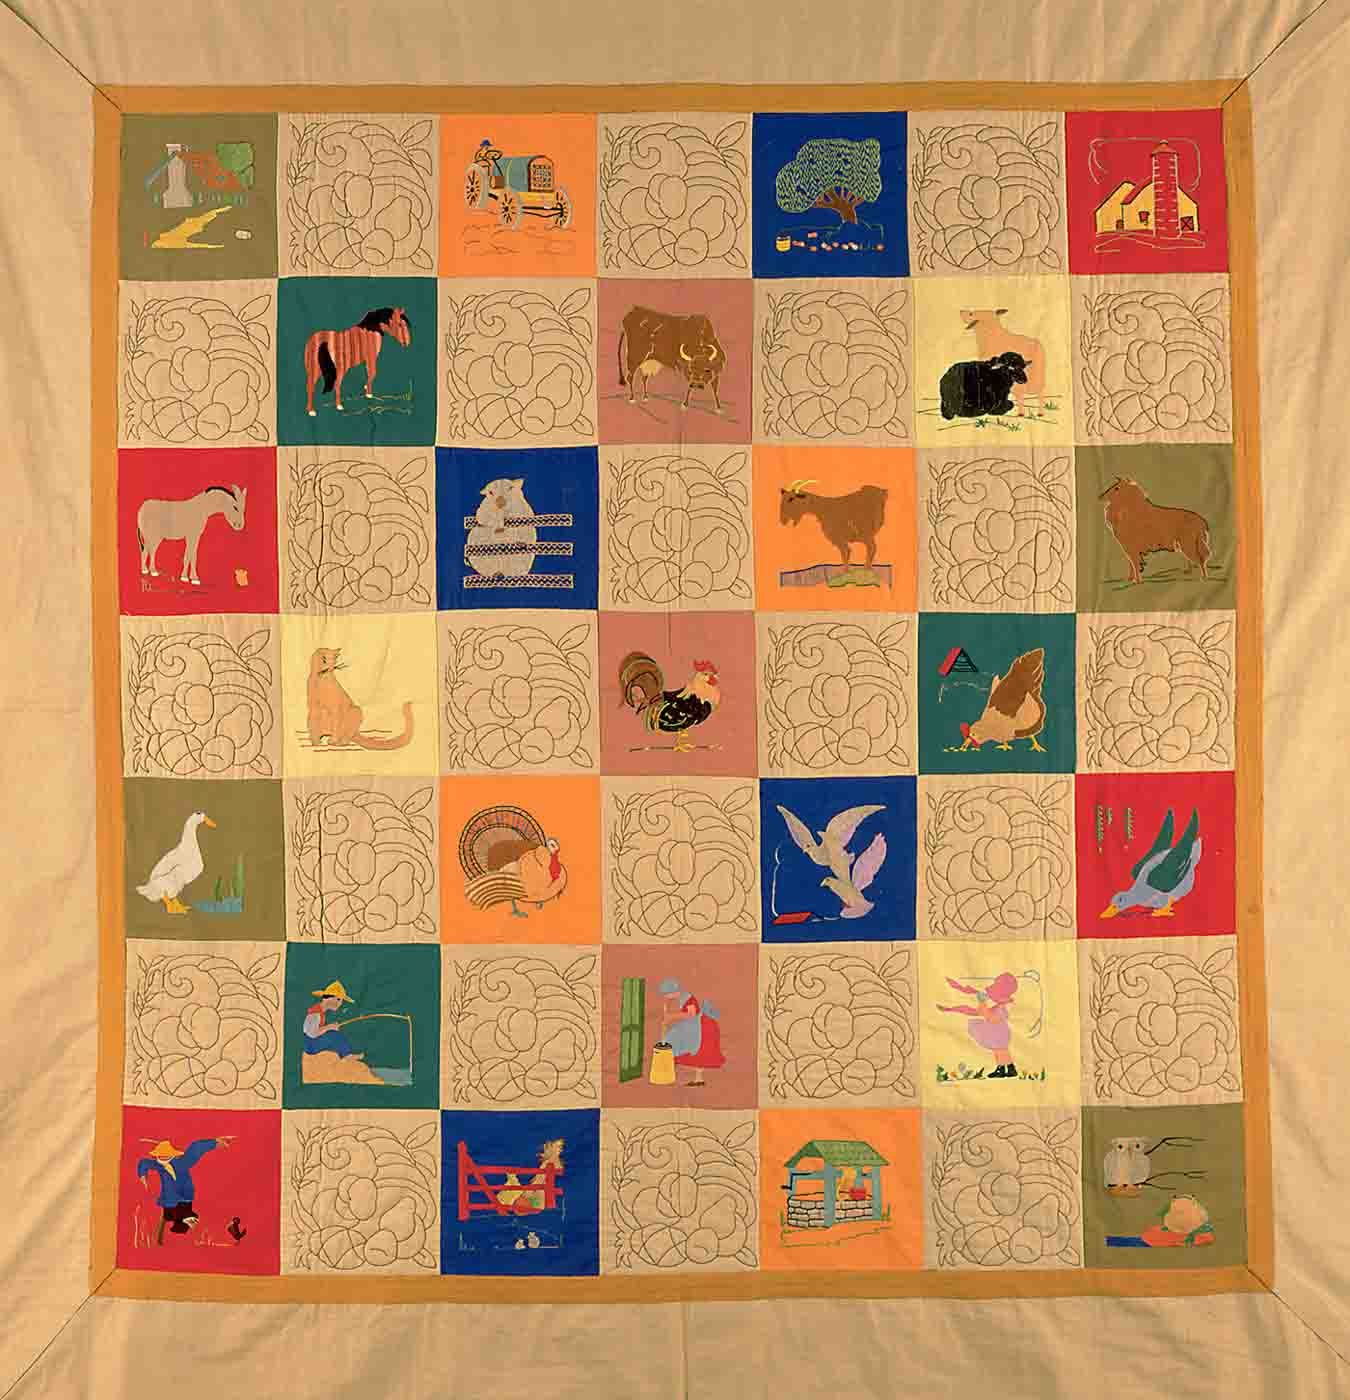 Quilt made from alternate quilted and embroidered squres depicting scenes of farm living and animals in the squares.